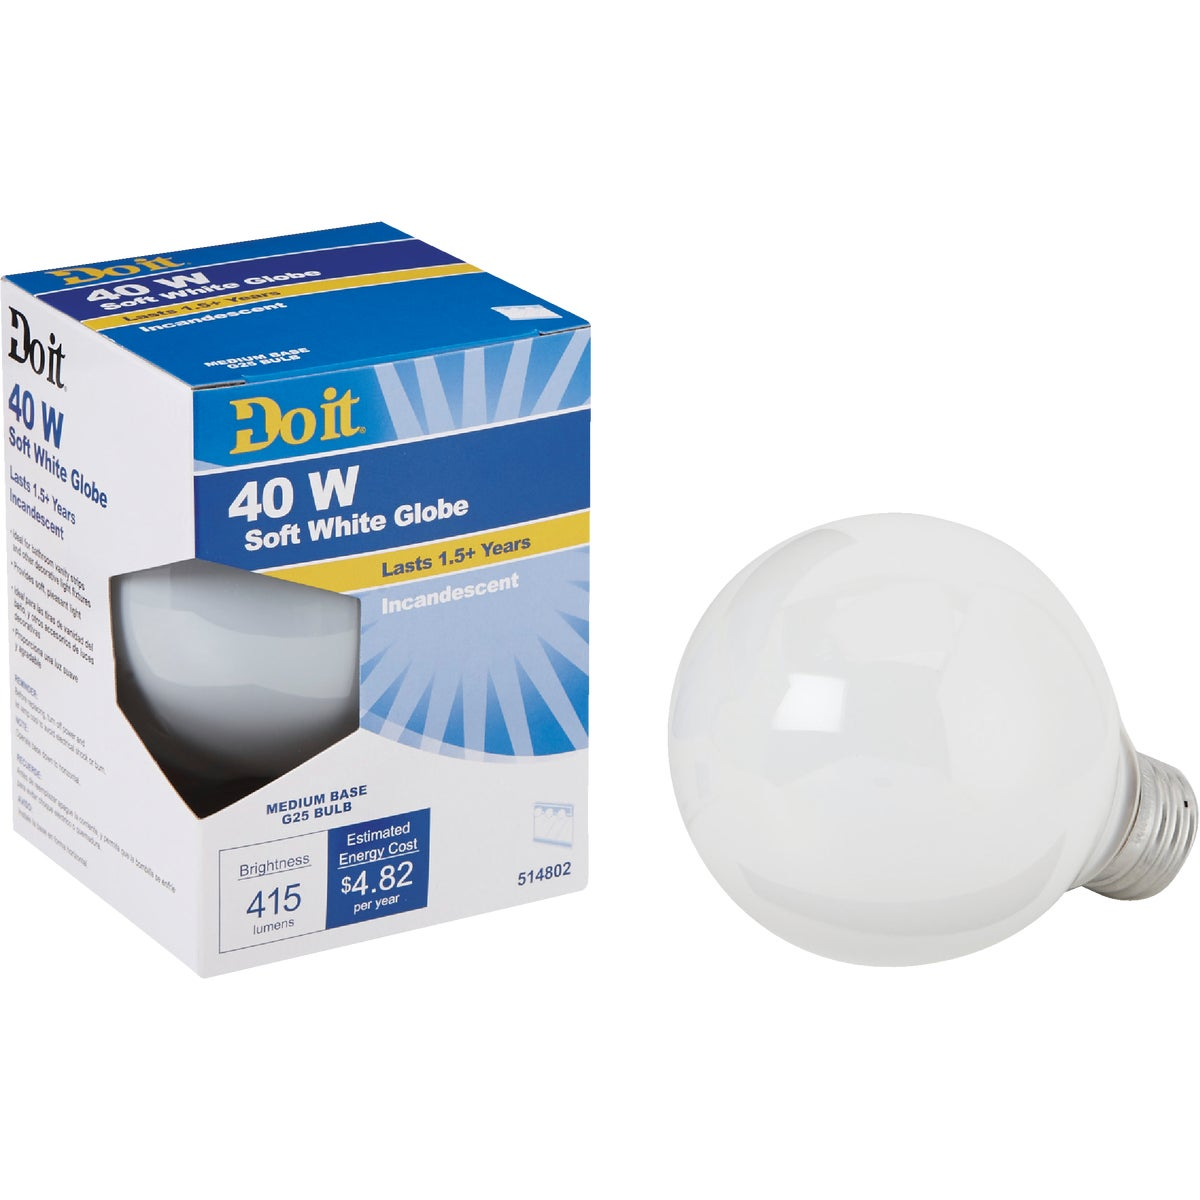 40W WHT 3-1/8GLOBE BULB - 17865 40G25/W-DIB by G E Private Label